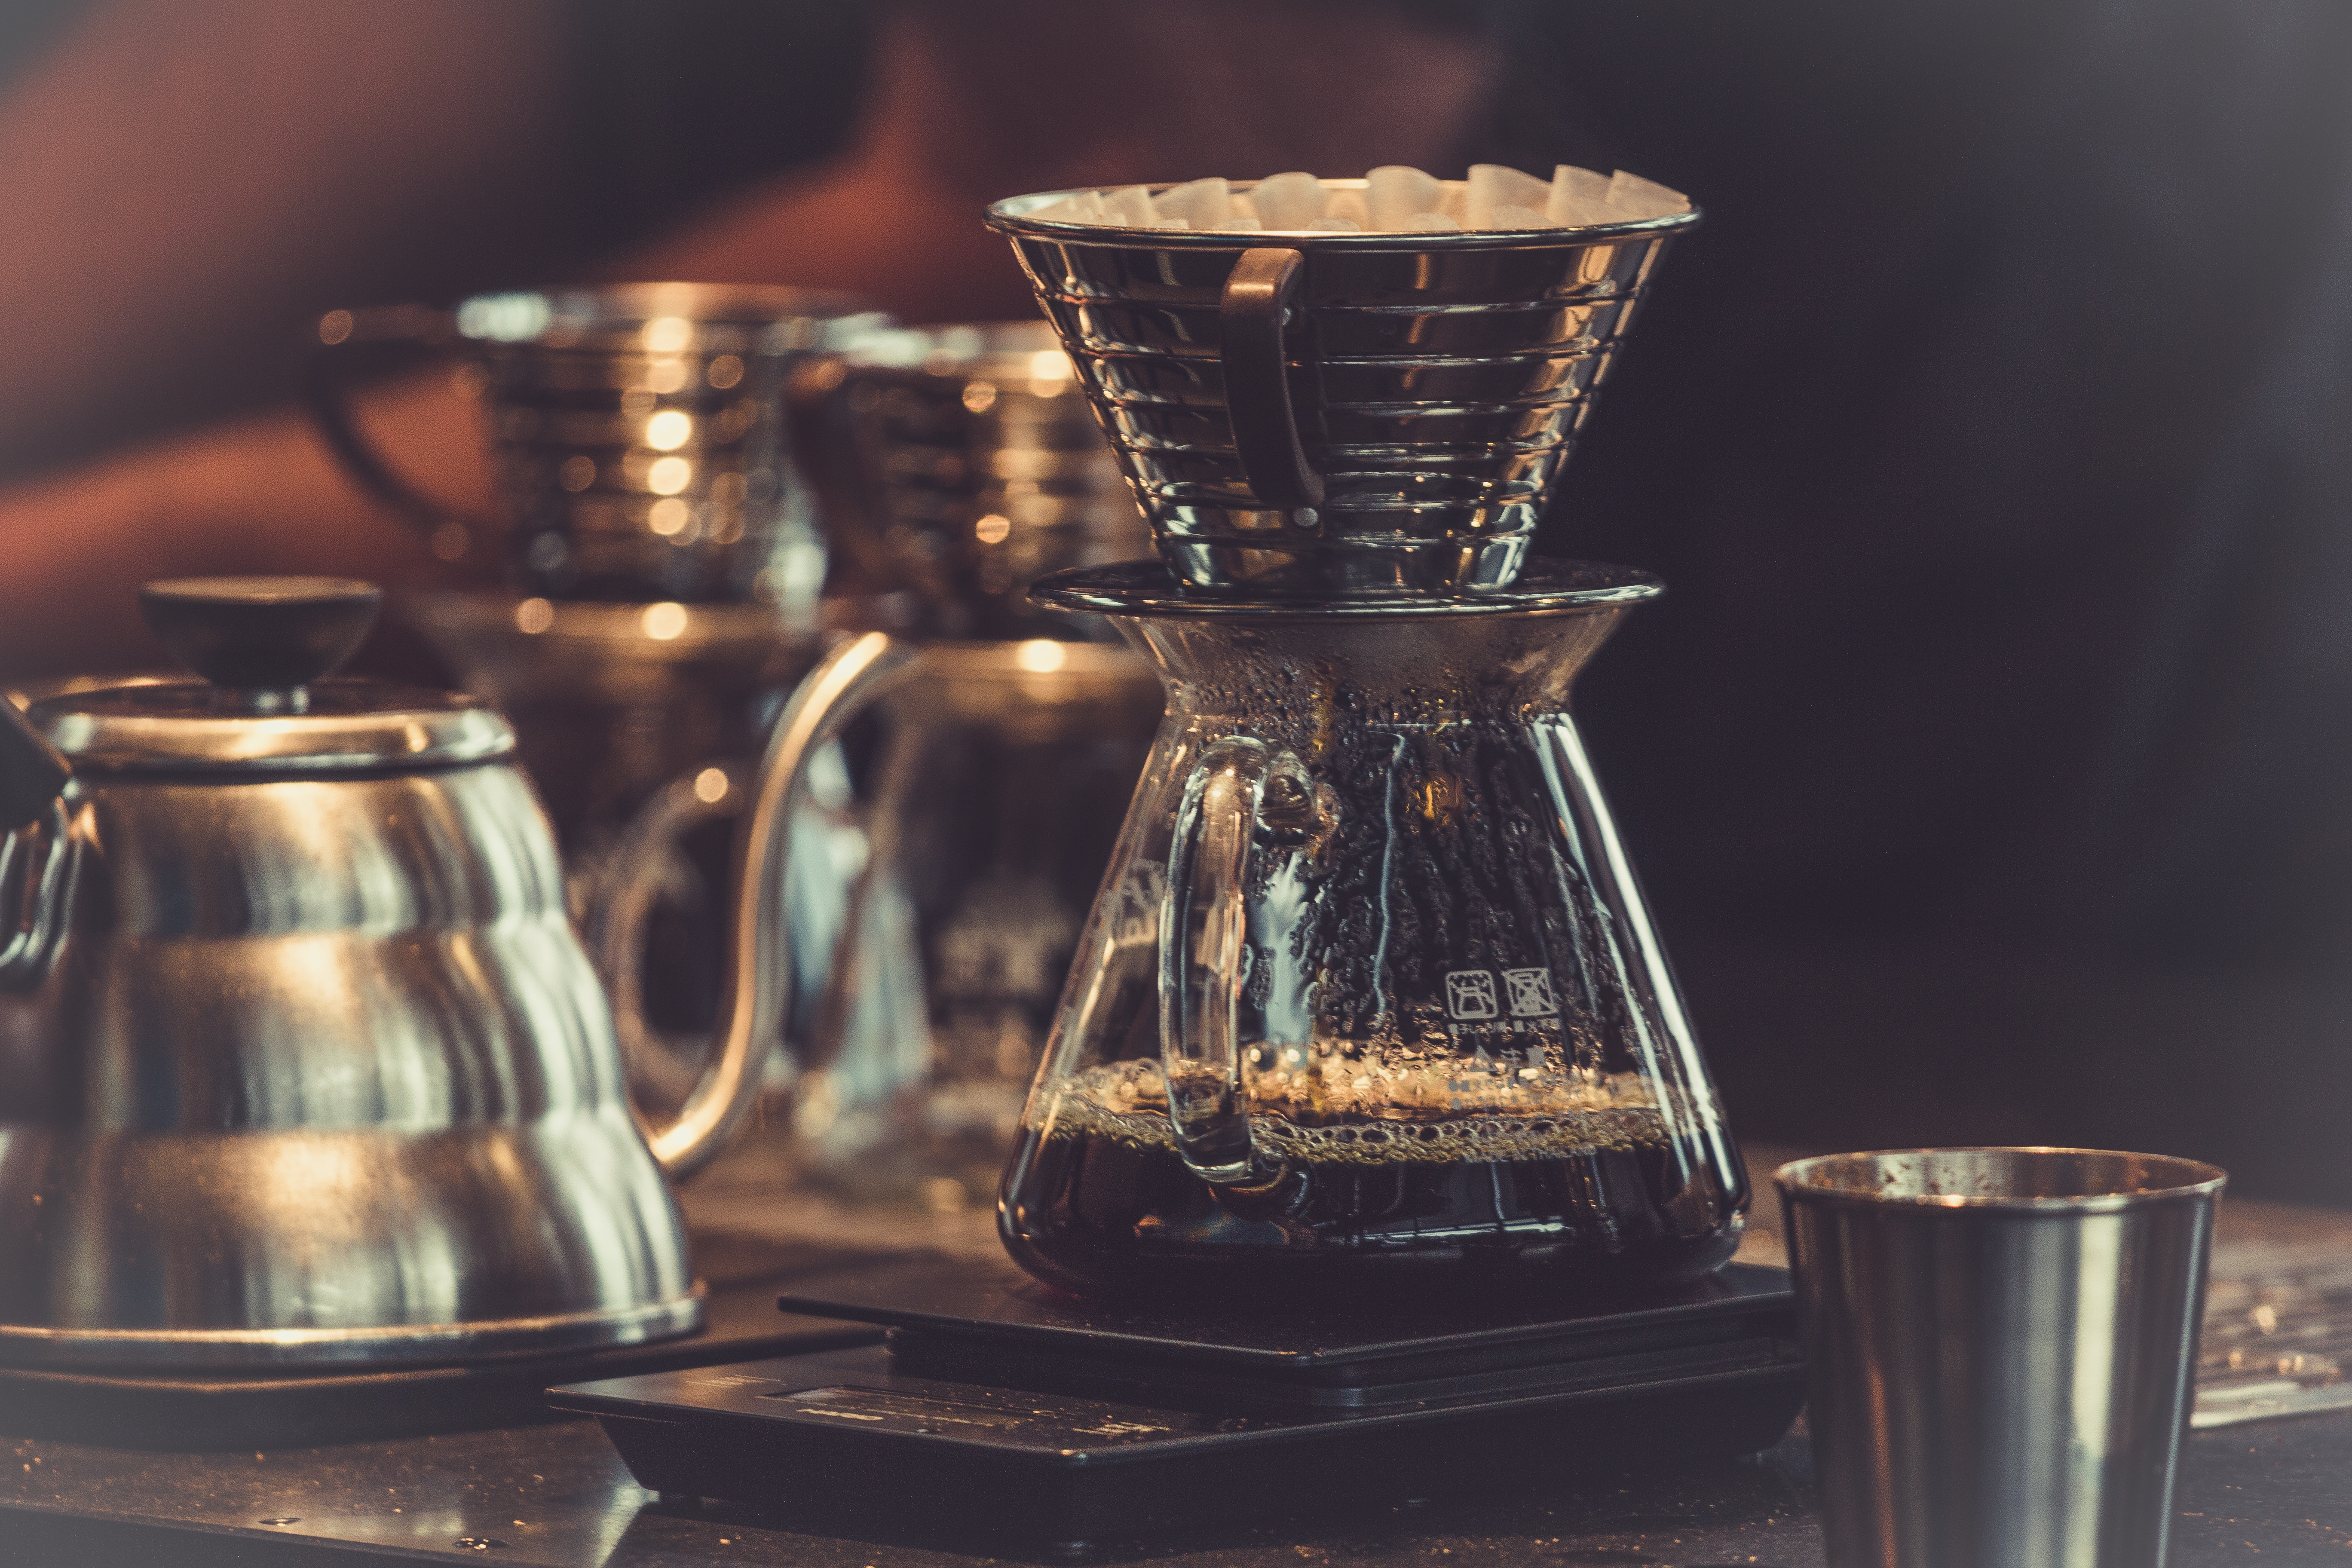 unsplash-kaffee-by-thomas-martinsen